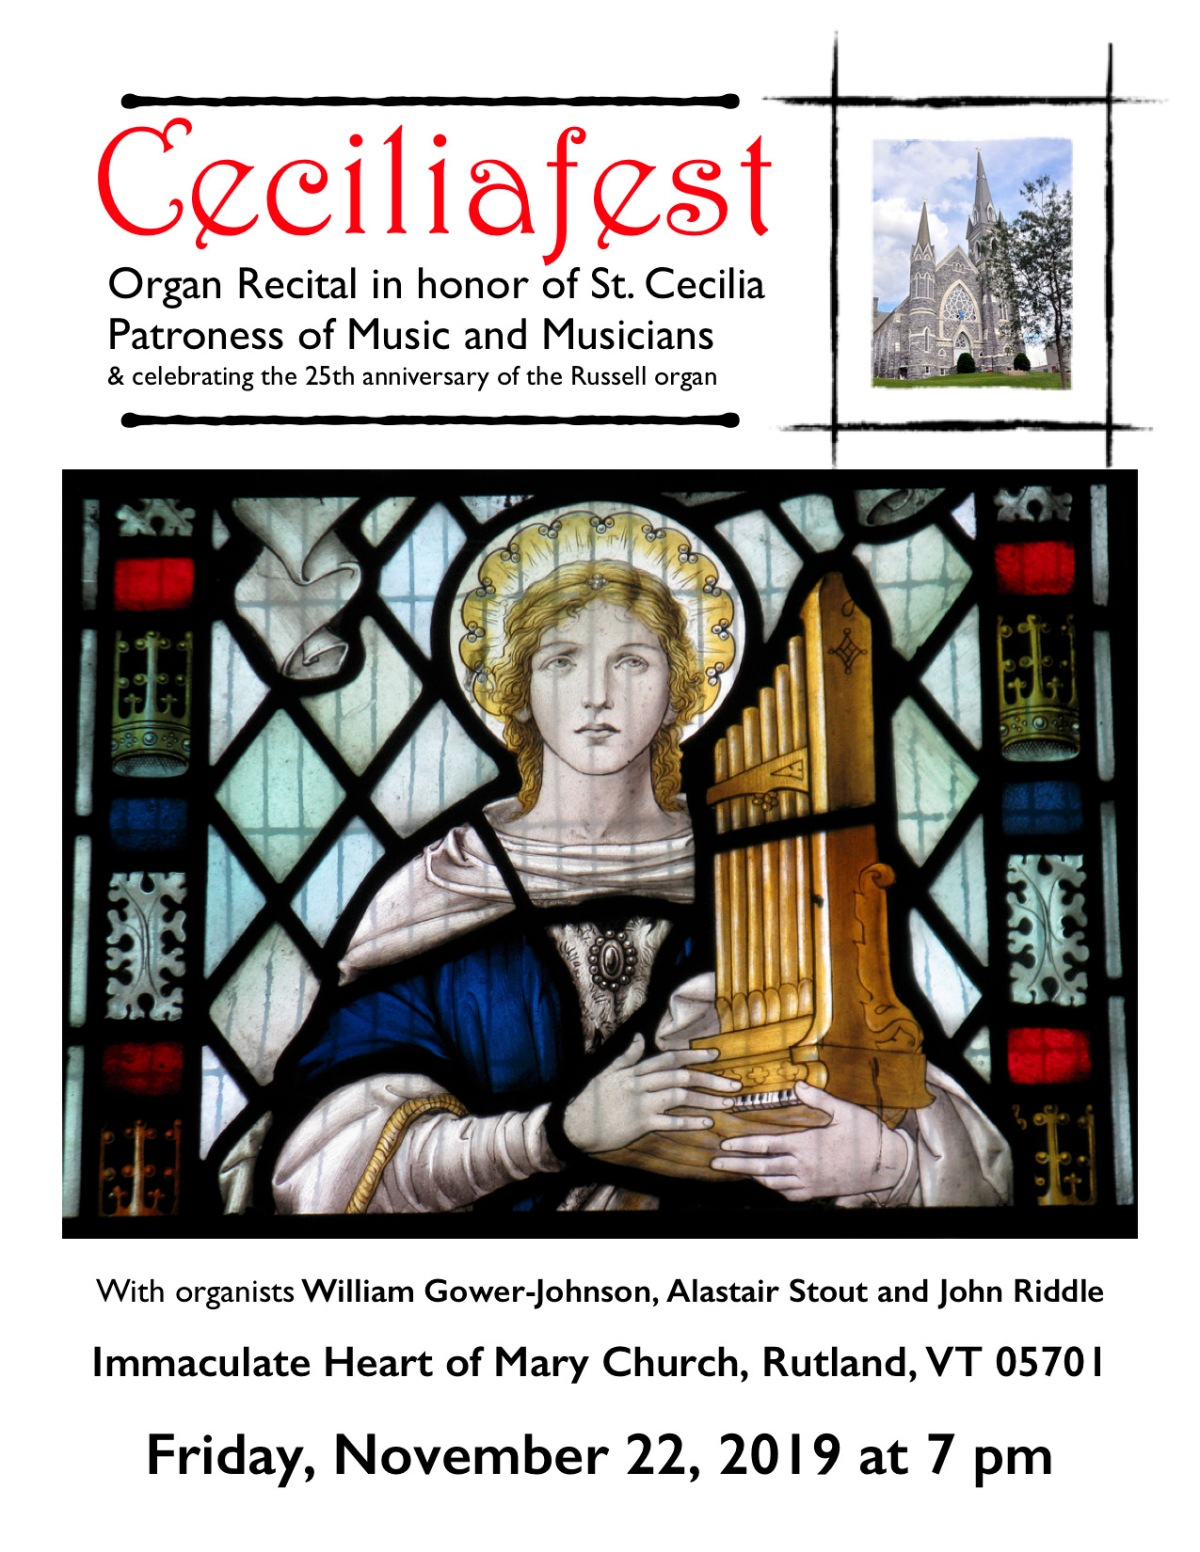 Nov. 22 ~ Ceciliafest Organ Recital